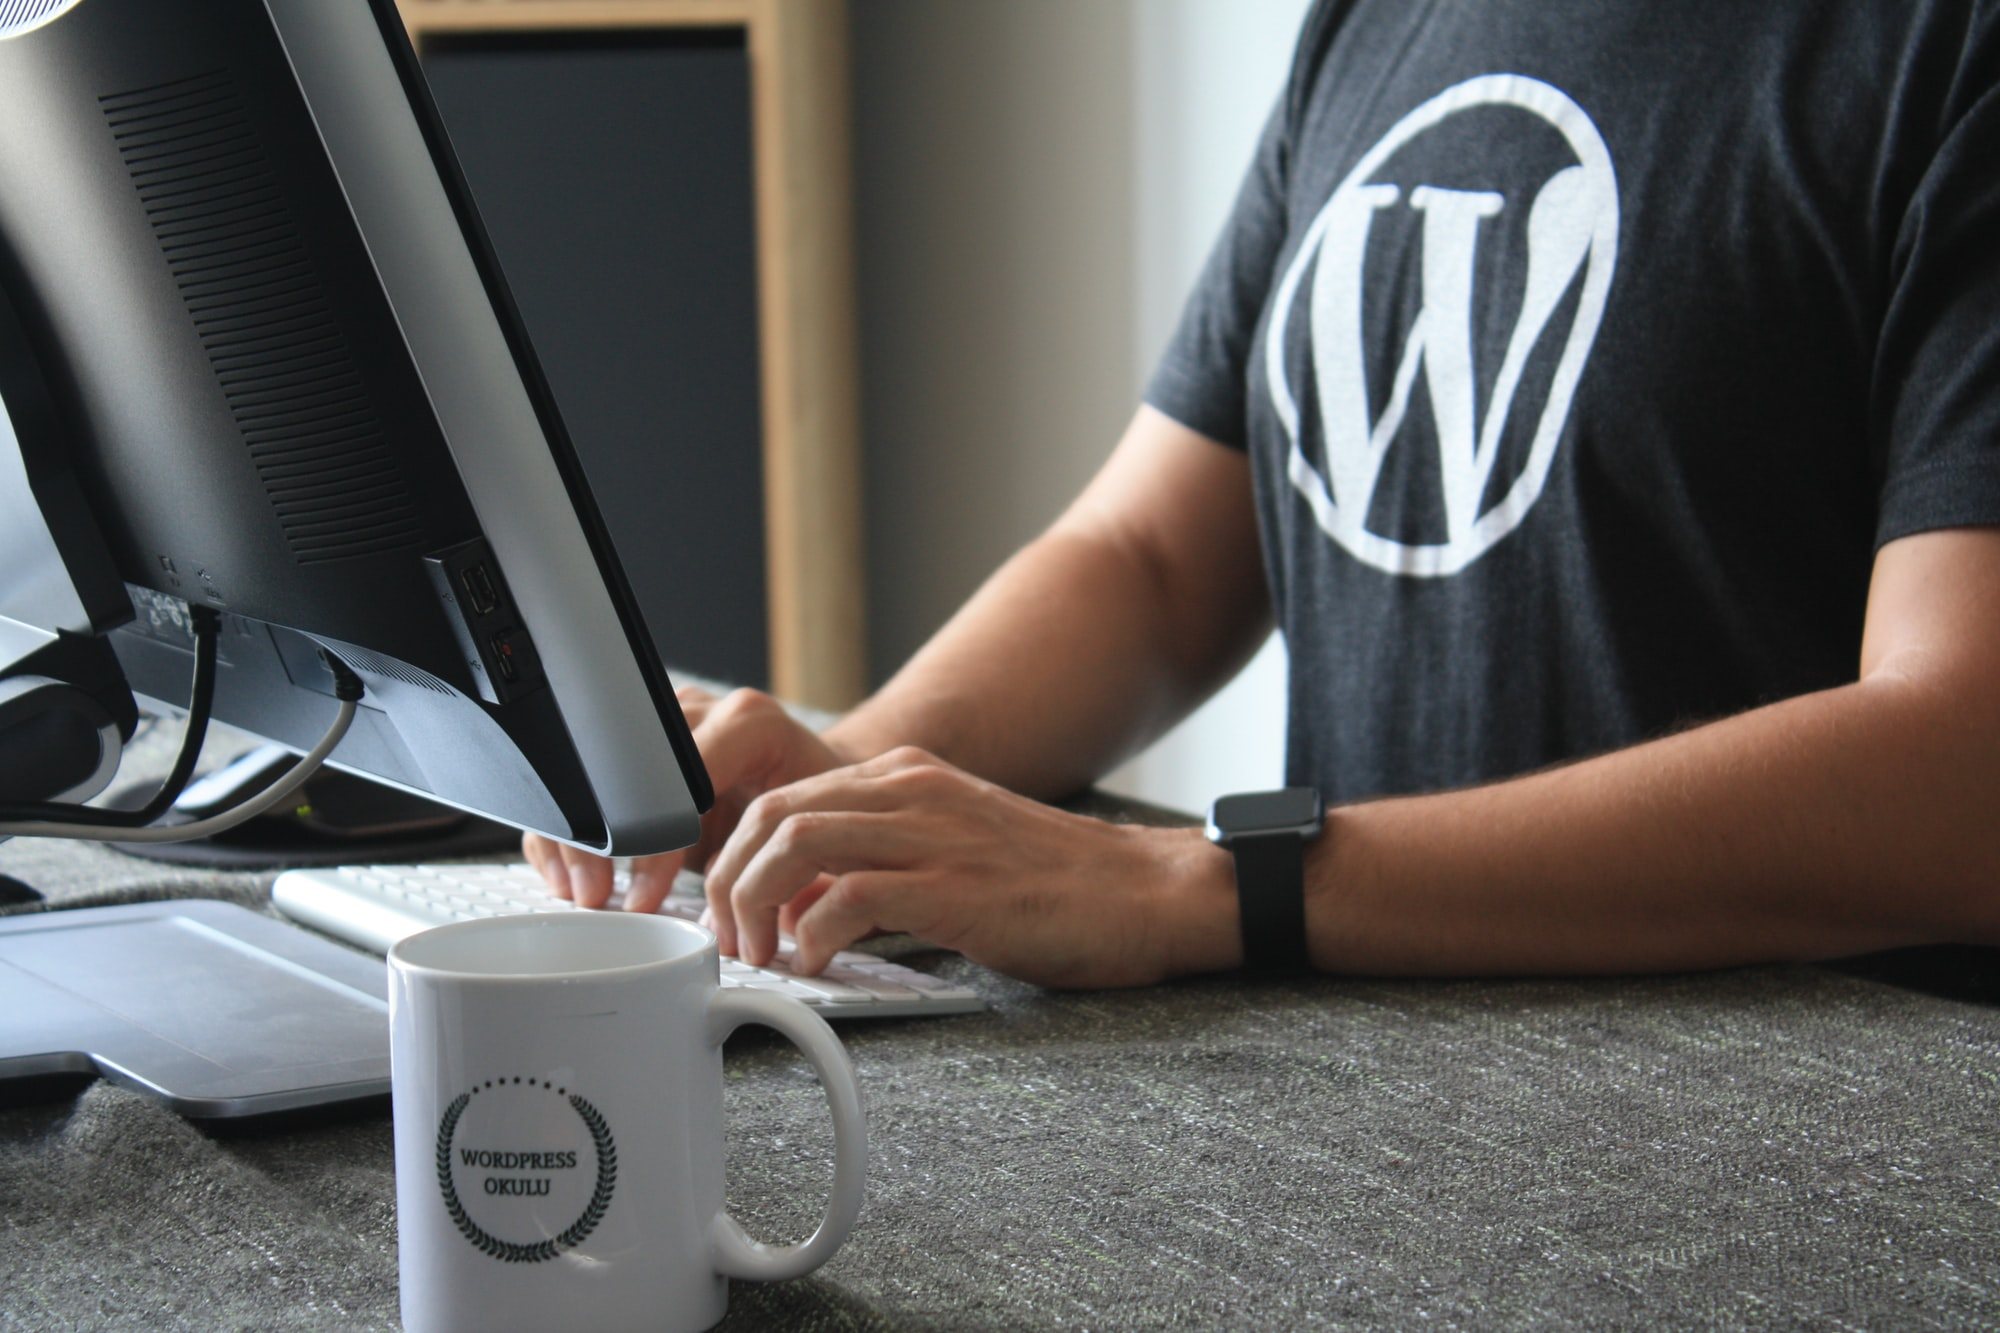 How to Tell if The Blog You're Reading is a WordPress One